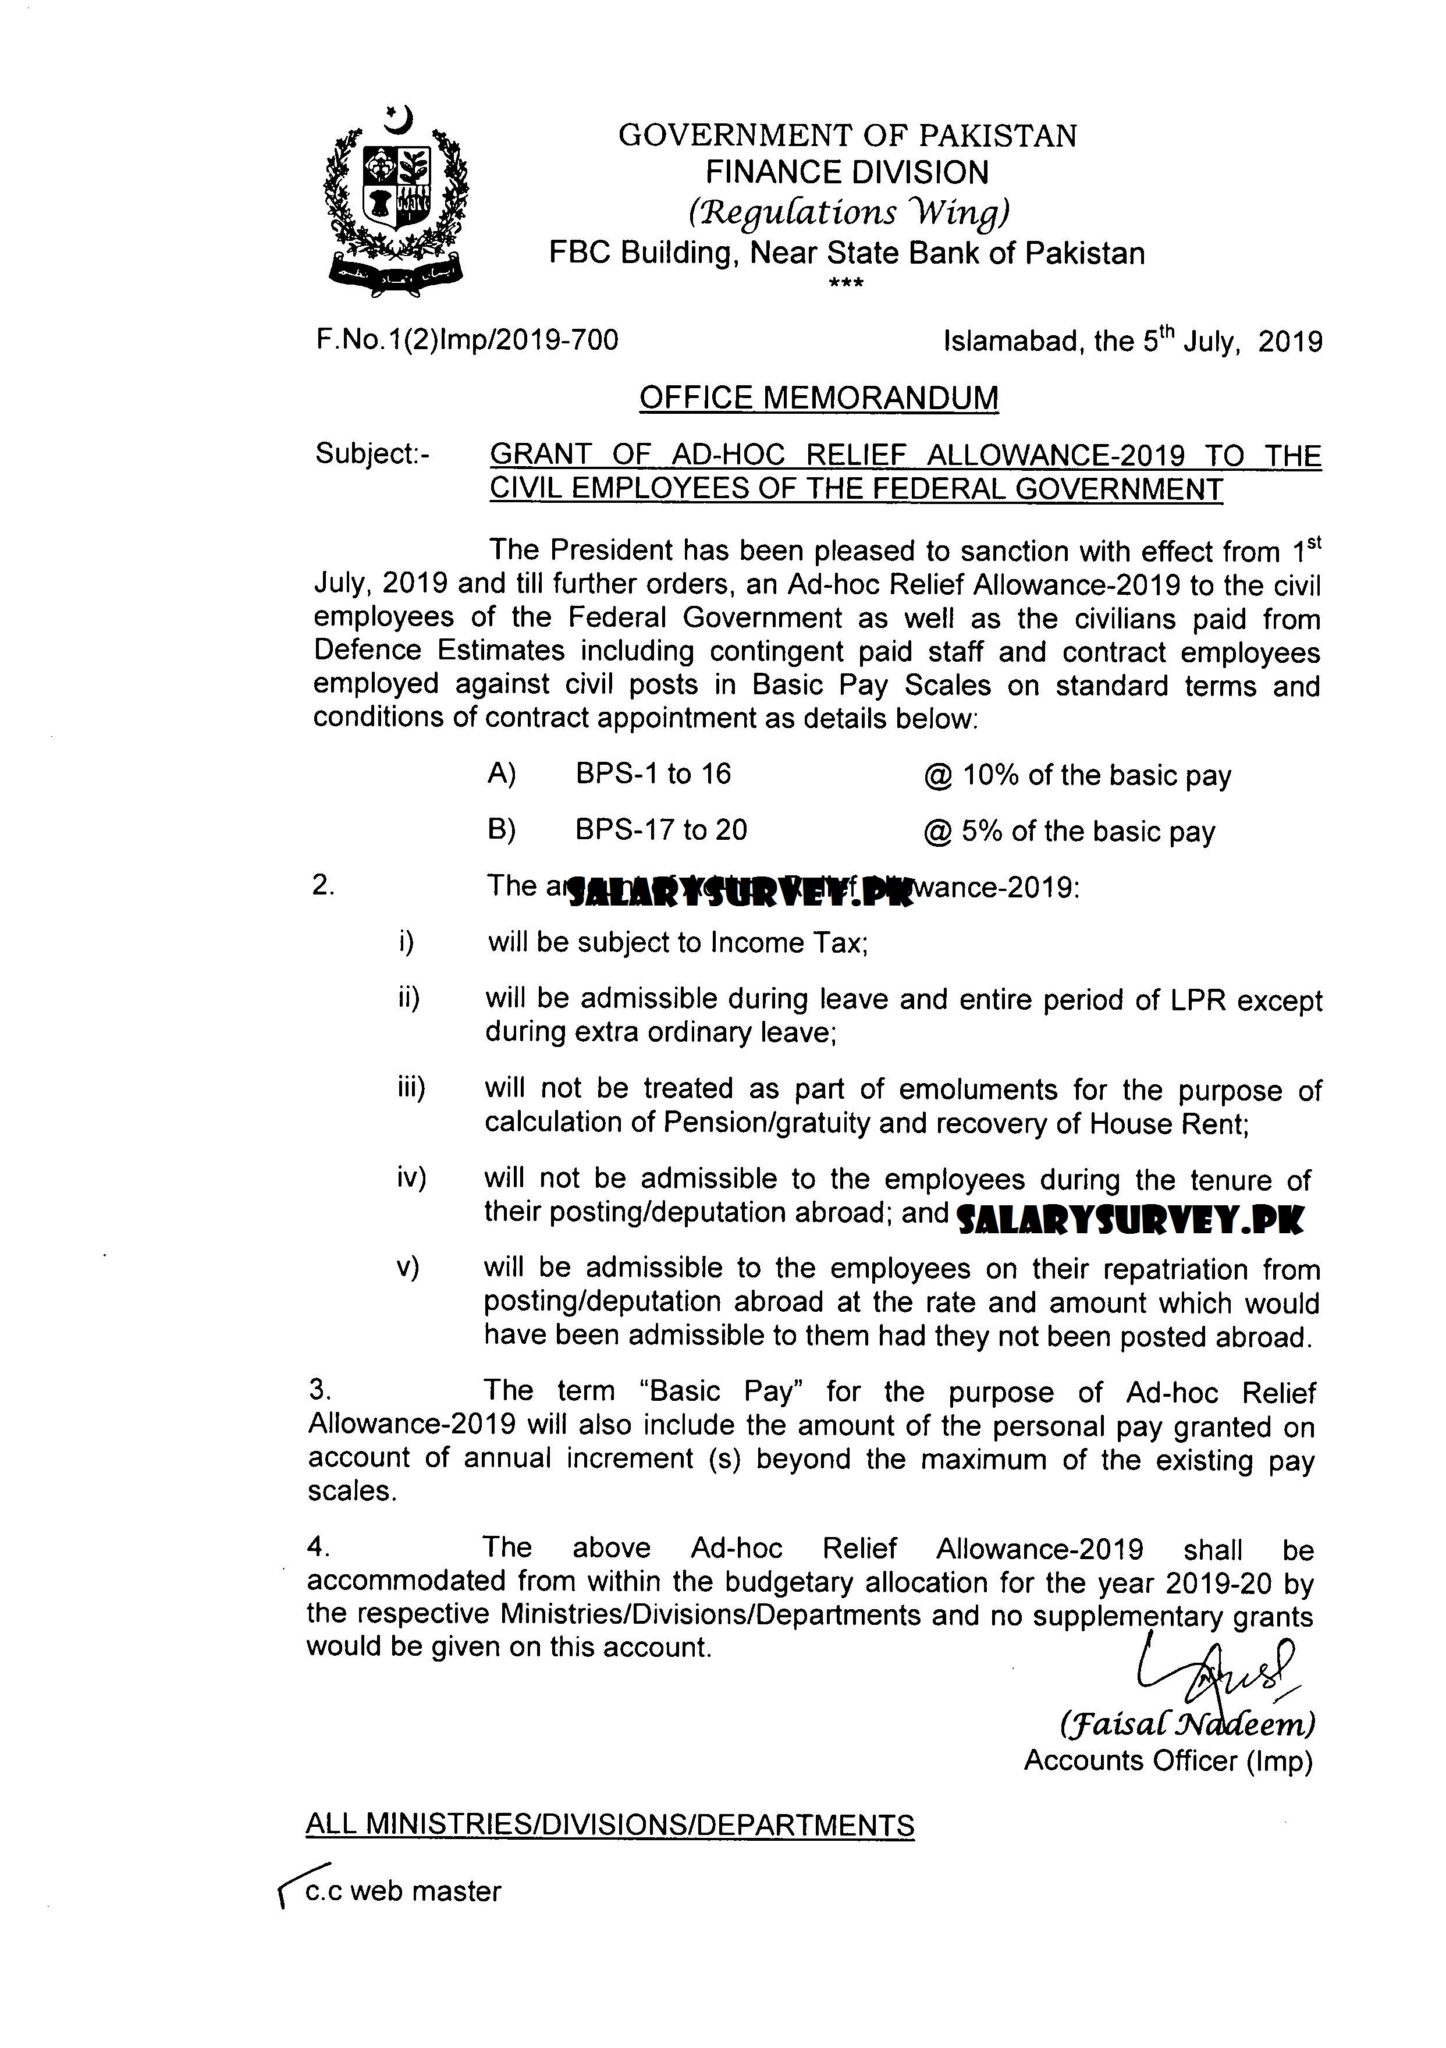 Adhoc Relief Allowance 2019-20 In Pakistan Finance Division Regulations Wing Effective From 1st July